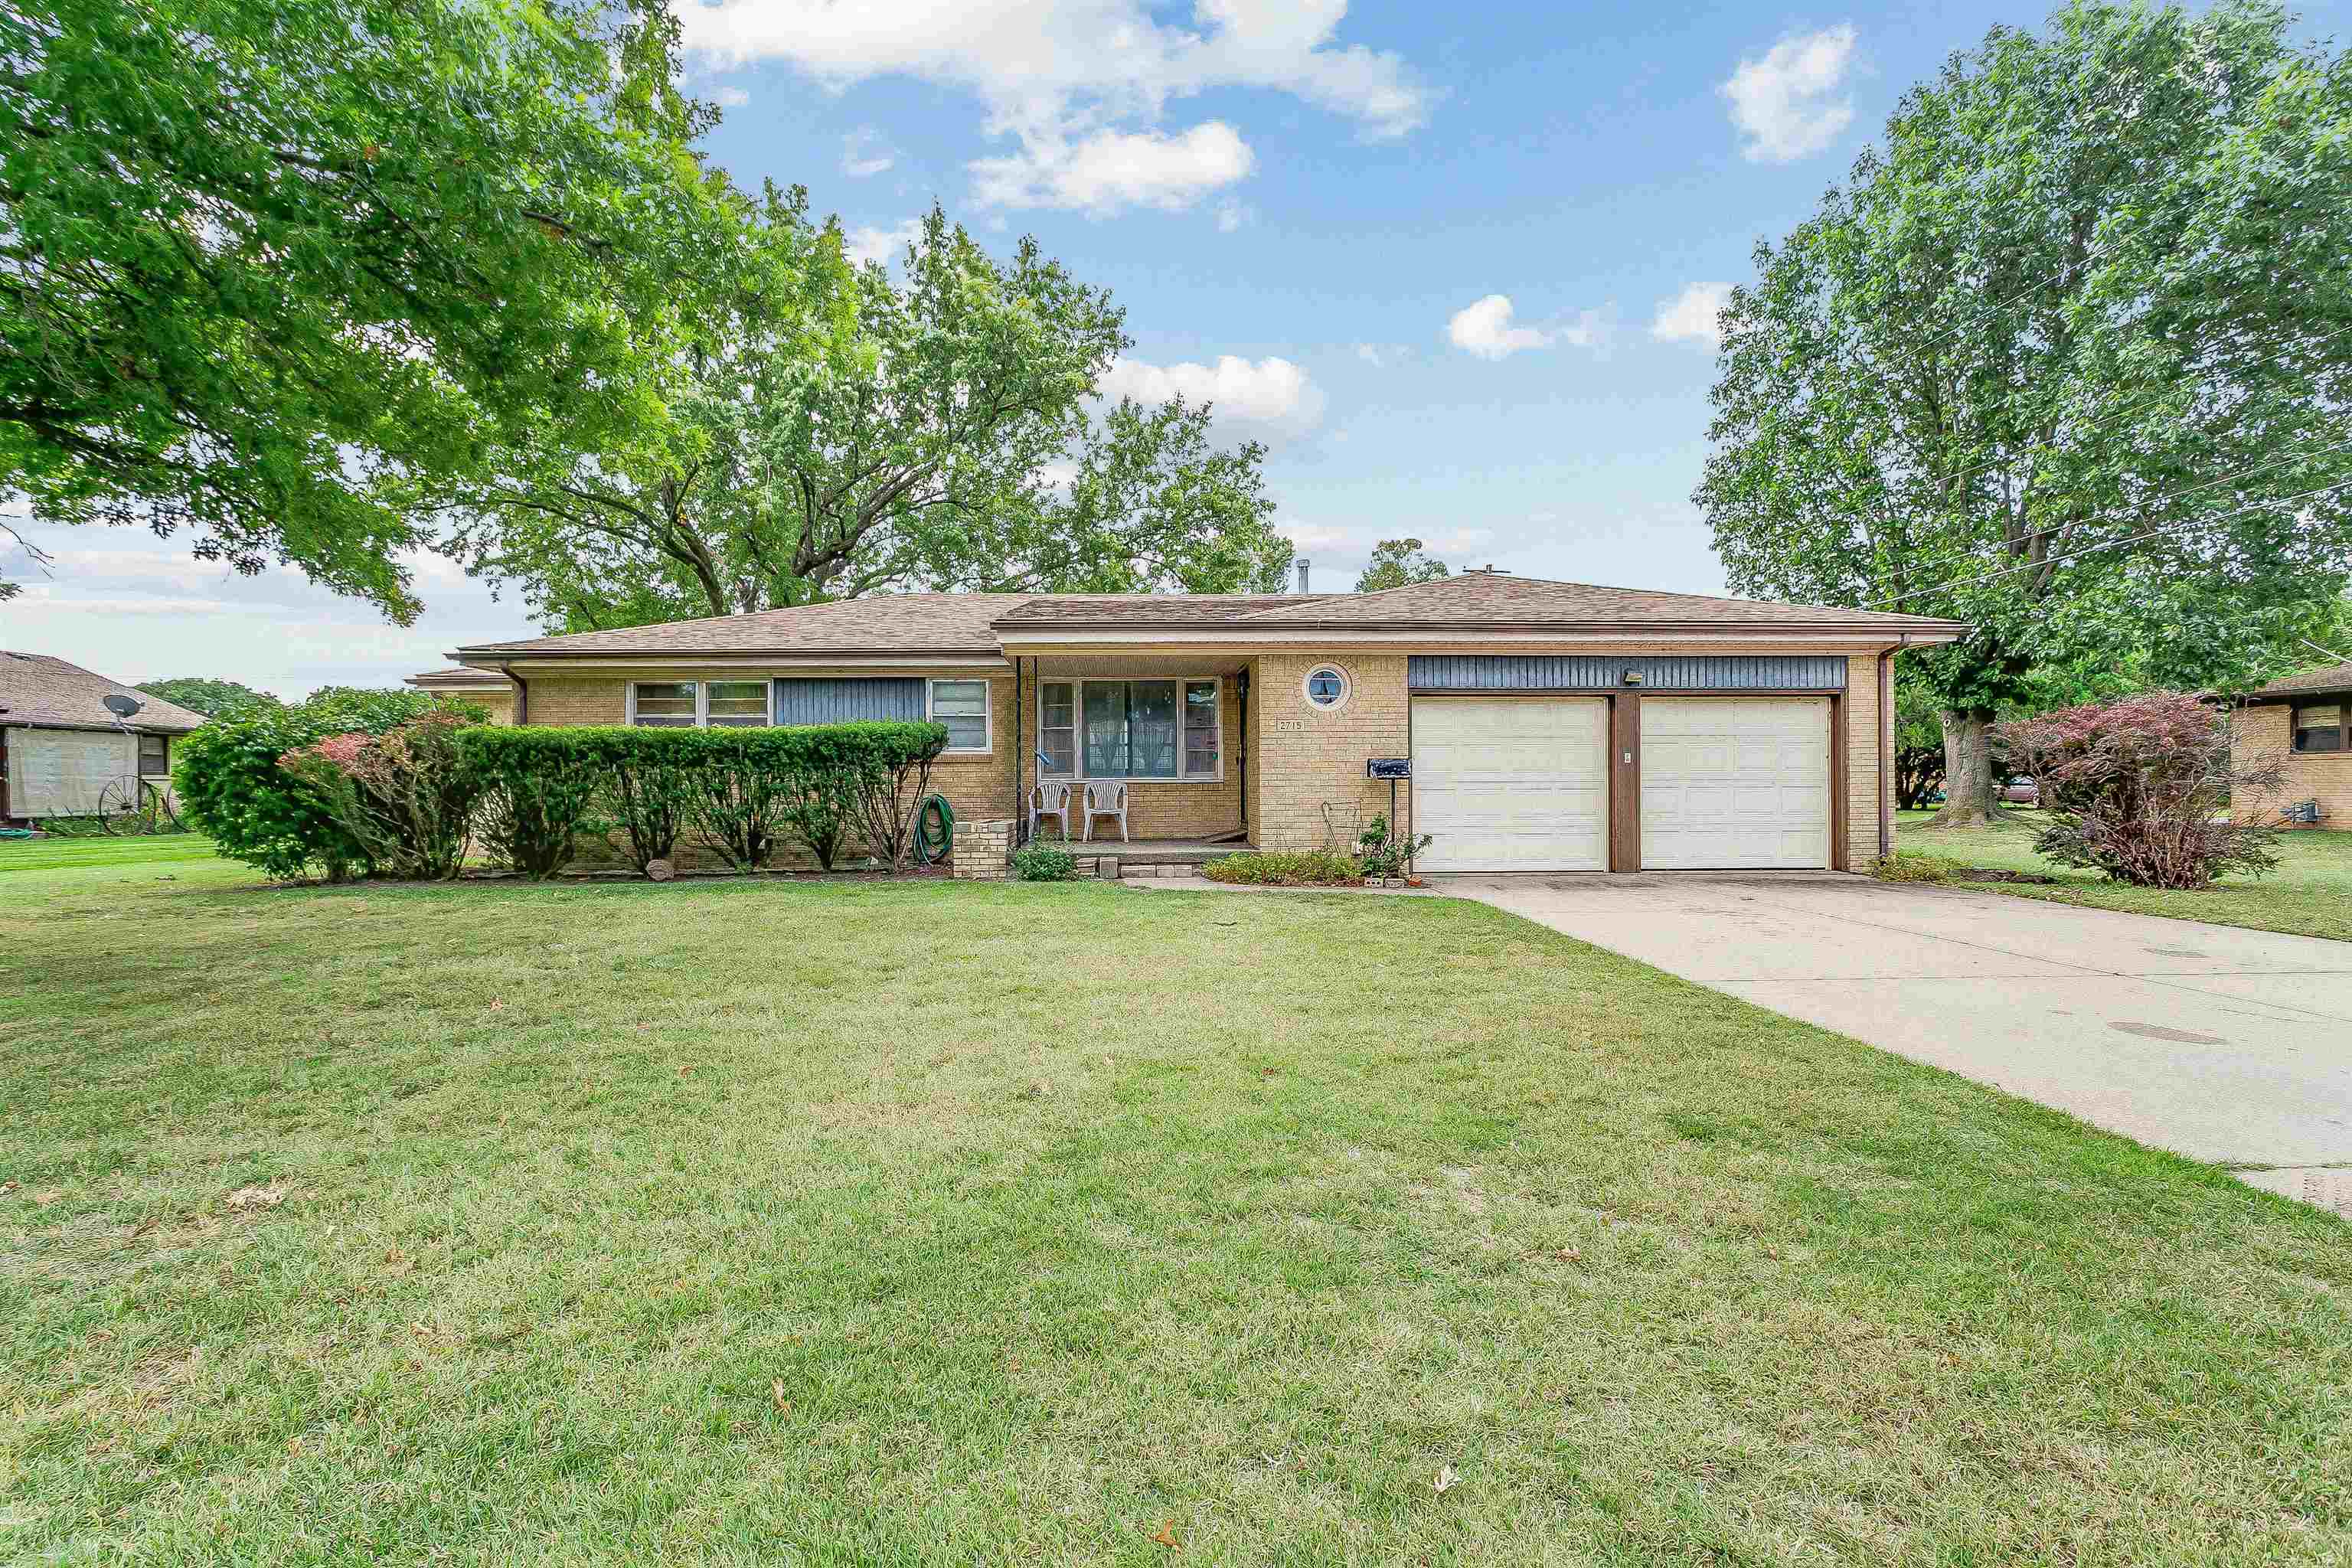 Spacious 3 bedroom, 2 bath full brick ranch home with main floor family room and partial basement.